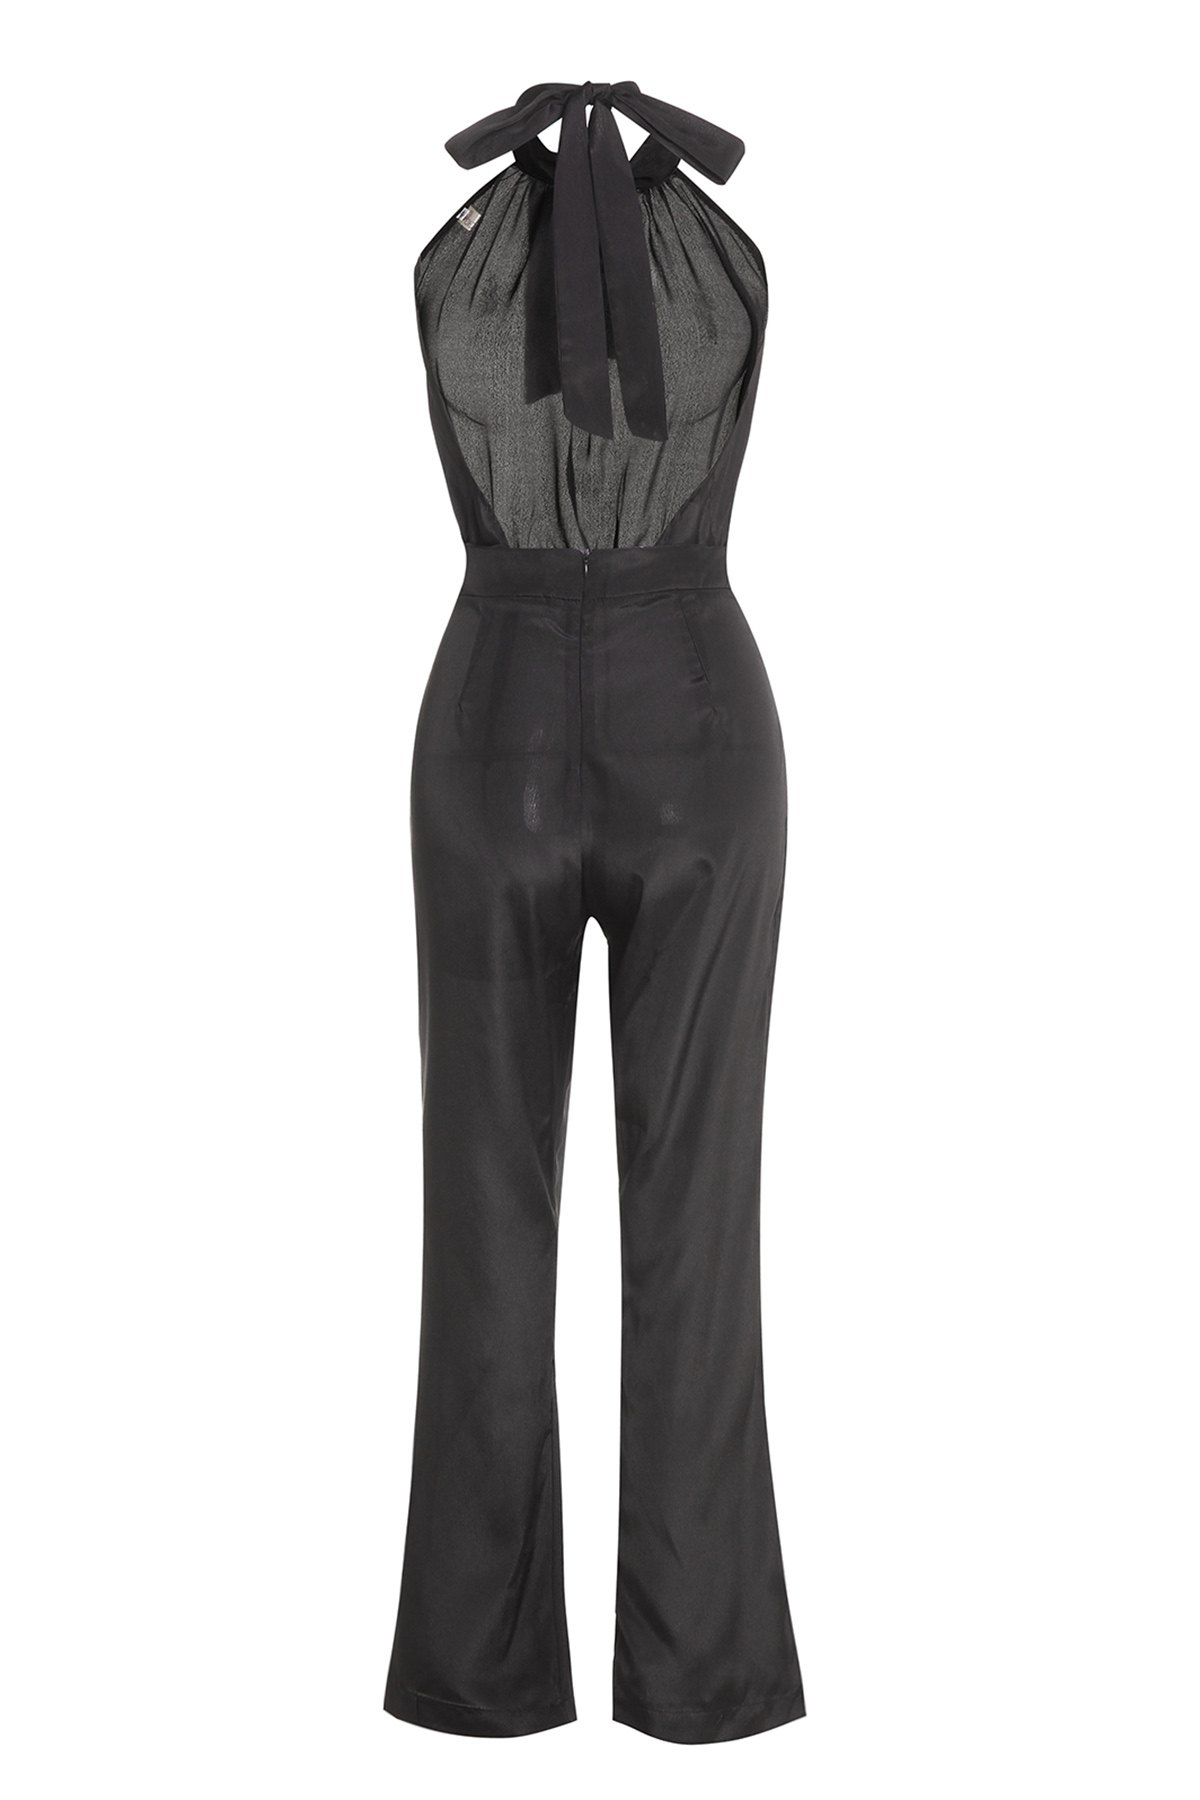 Stylish Halter Sleeveless Solid Color Backless Lace-Up Women's Jumpsuit - BLACK L